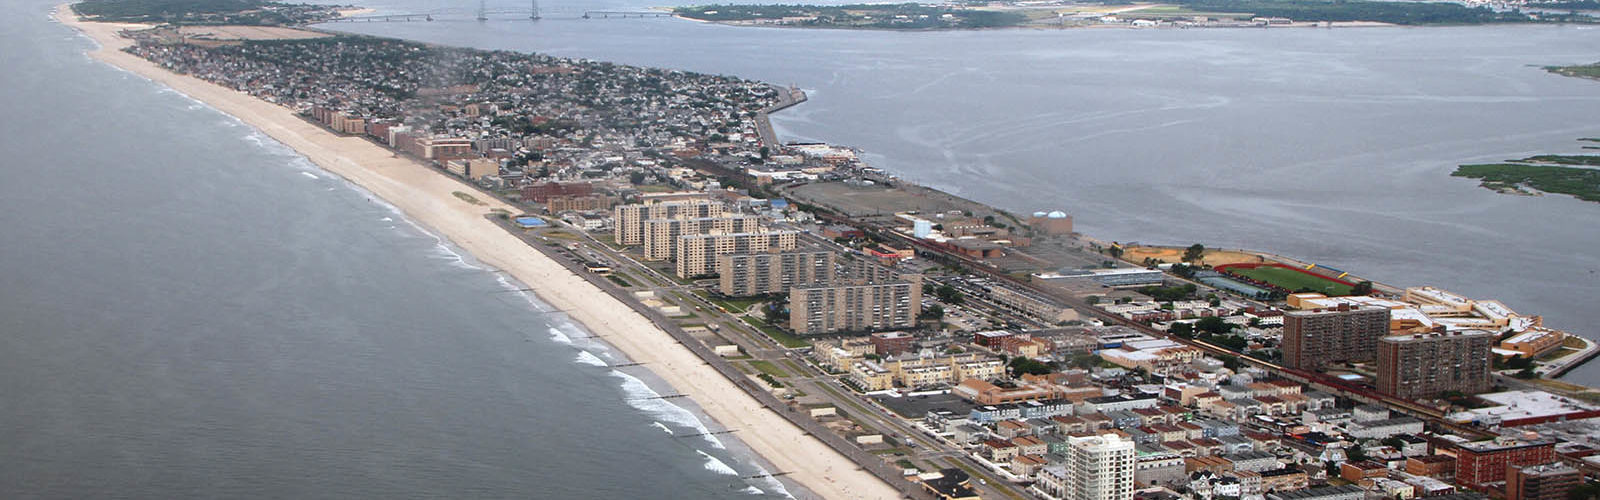 plages-new-york-bronx-brooklyn-queens-une